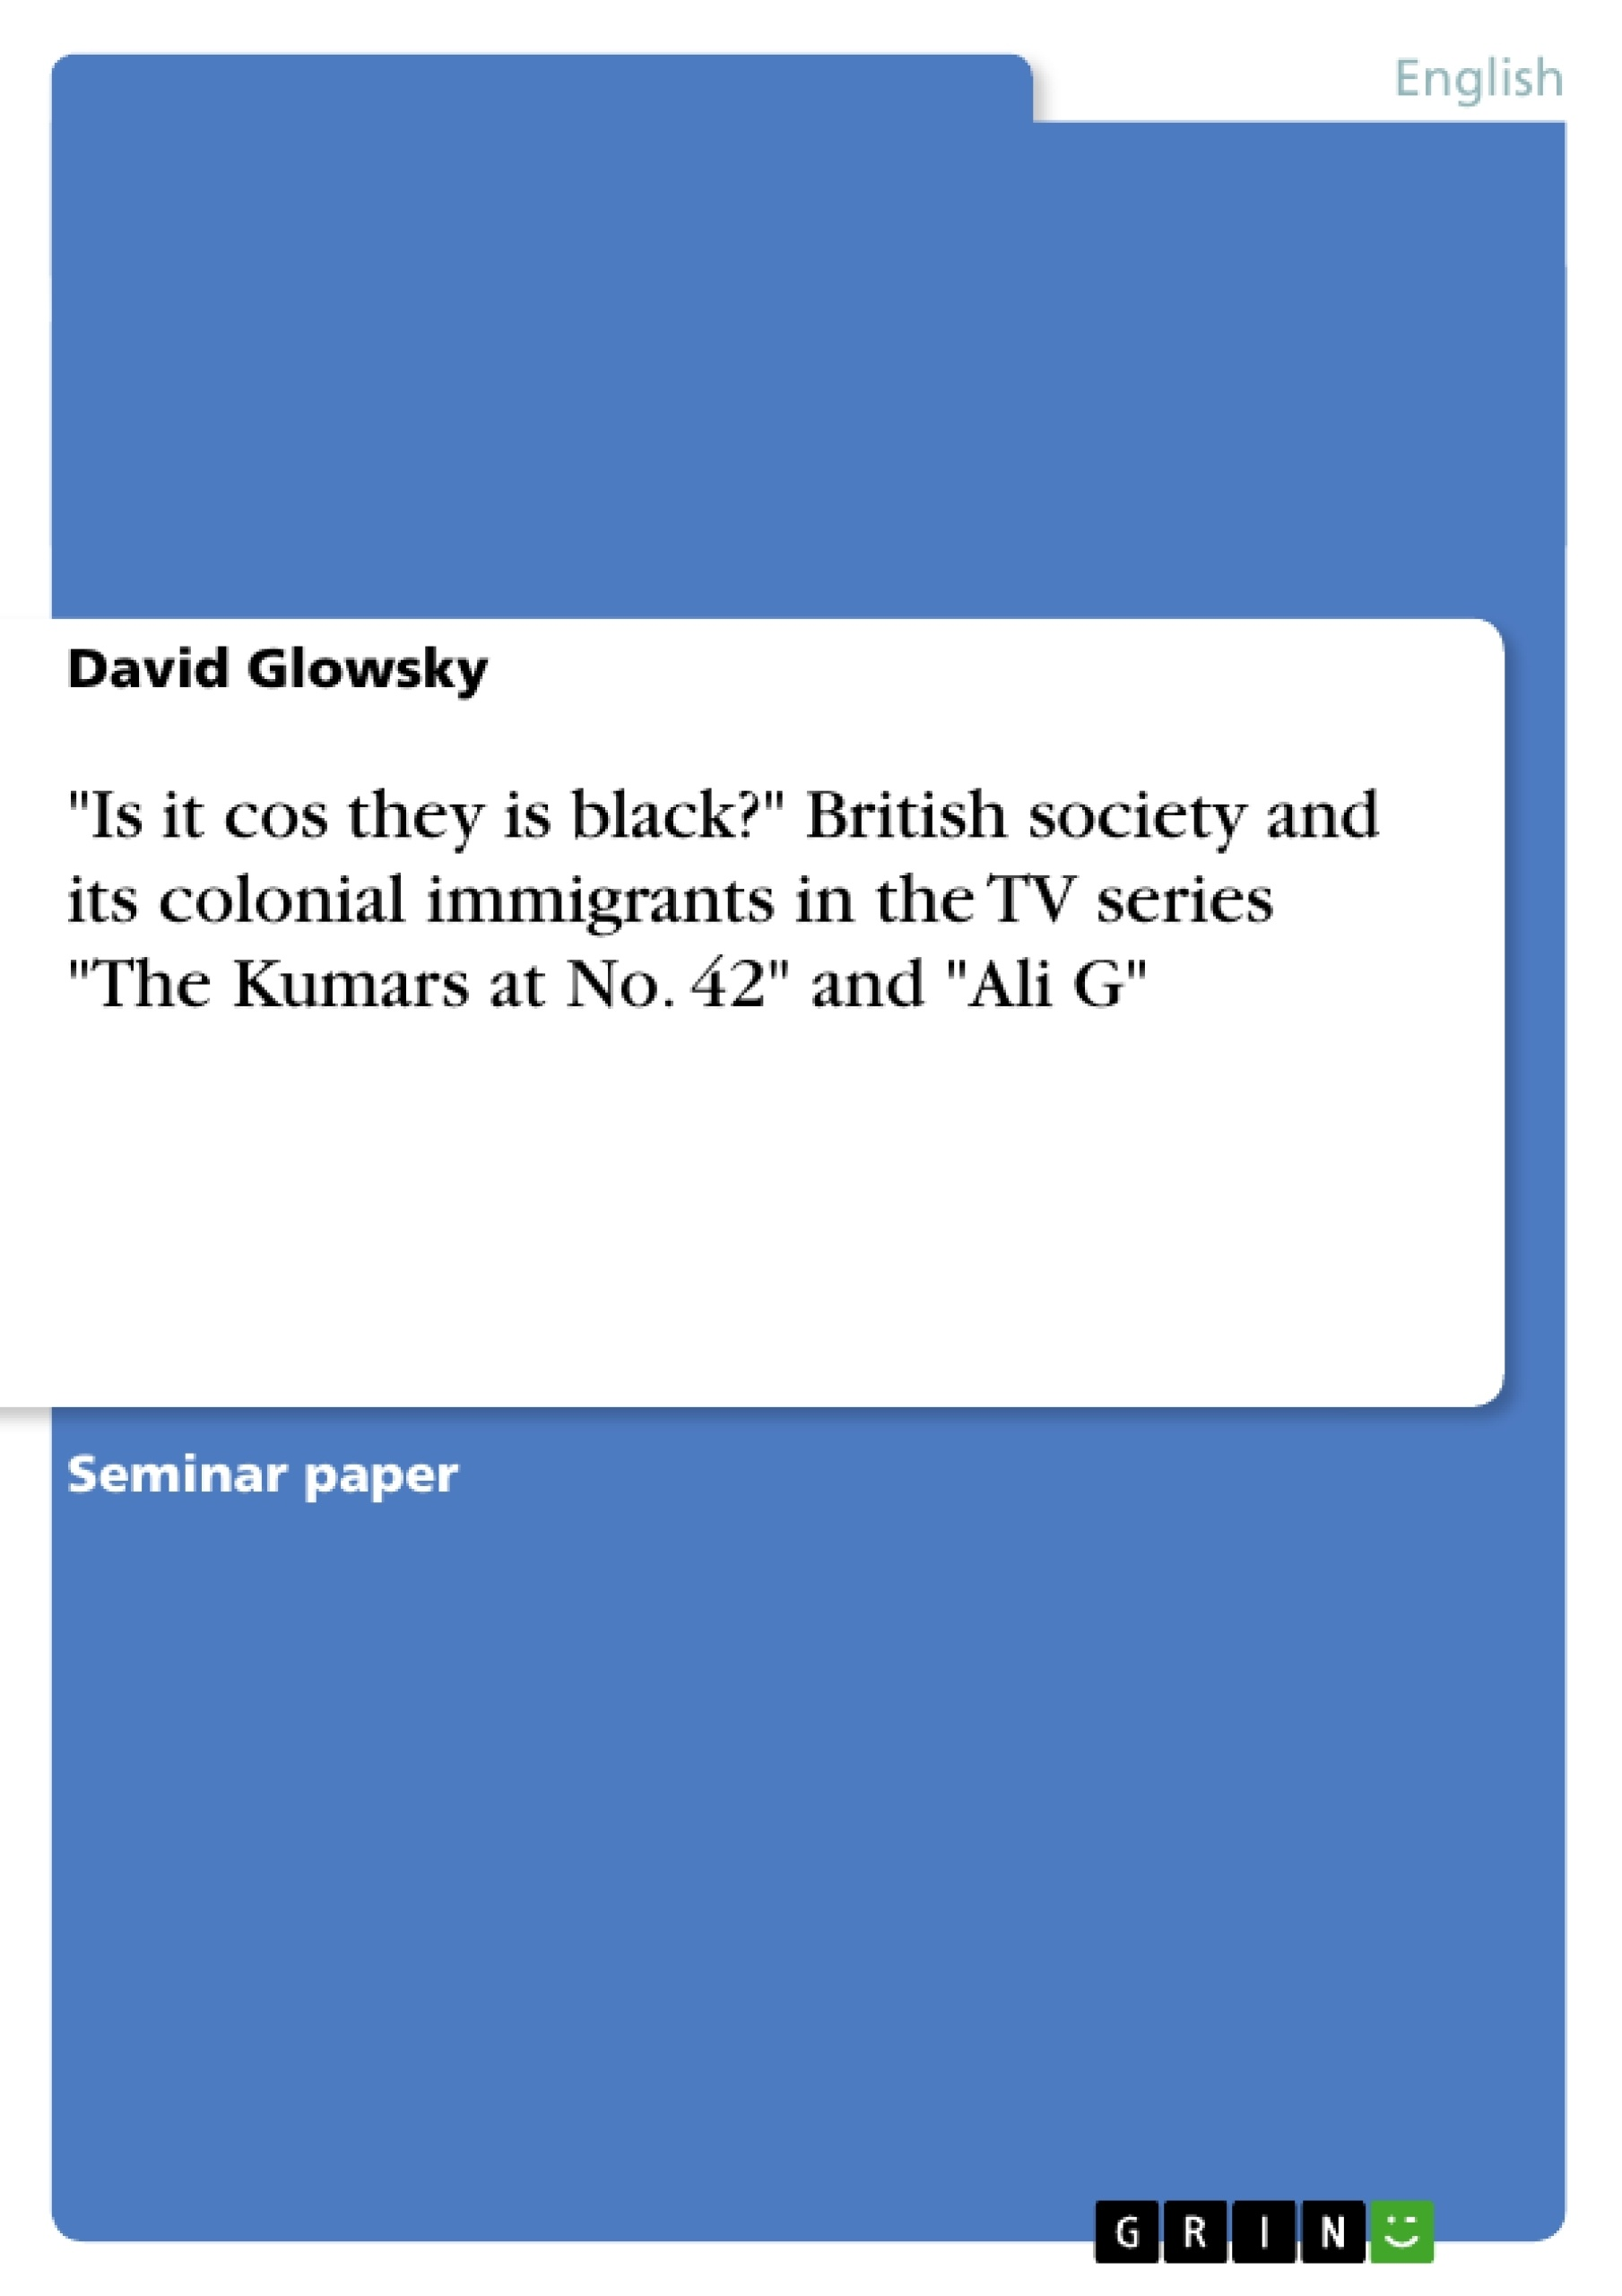 """Title: """"Is it cos they is black?"""" British society and its colonial immigrants in the TV series """"The Kumars at No. 42"""" and """"Ali G"""""""